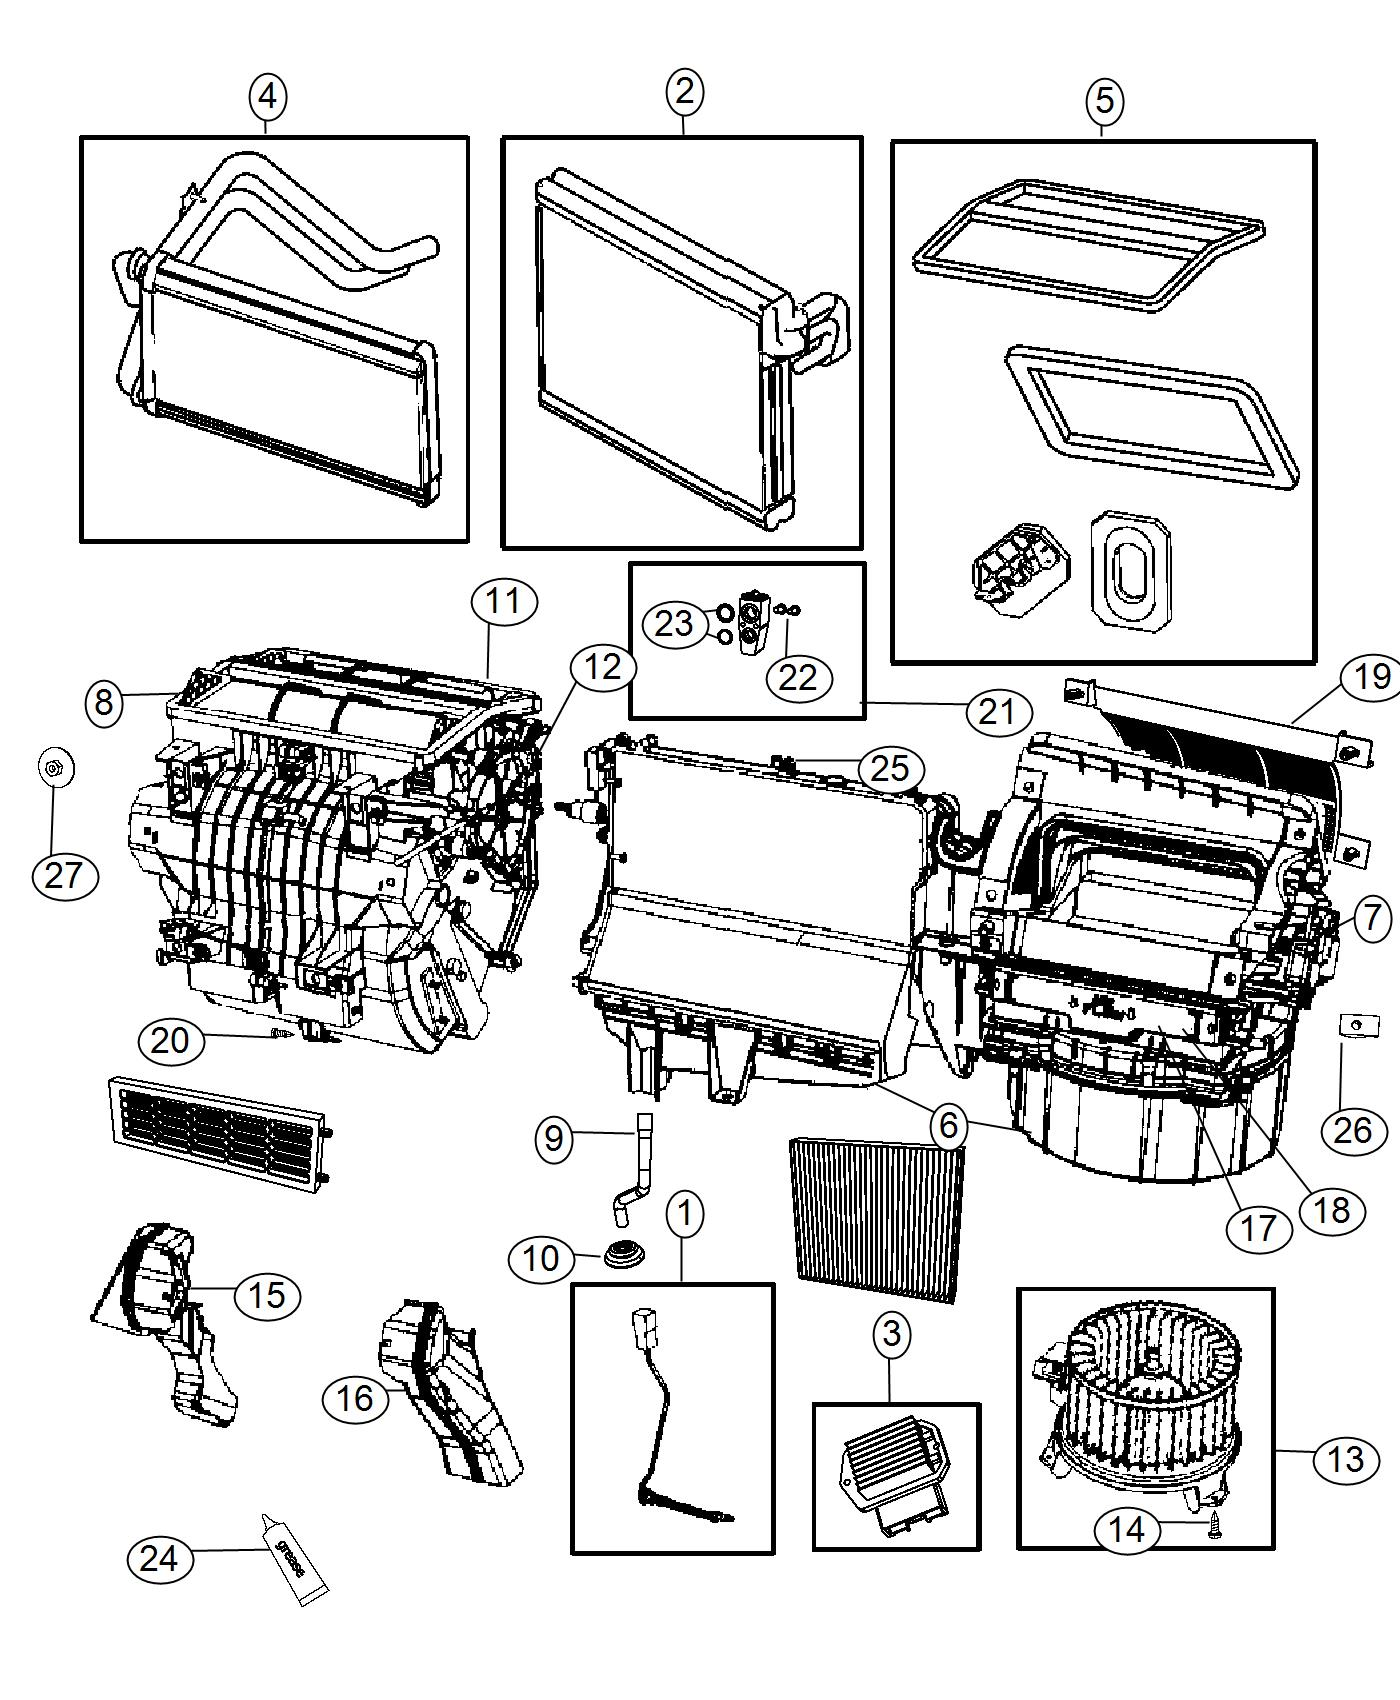 Jeep Compass Evaporator Air Conditioning Heater